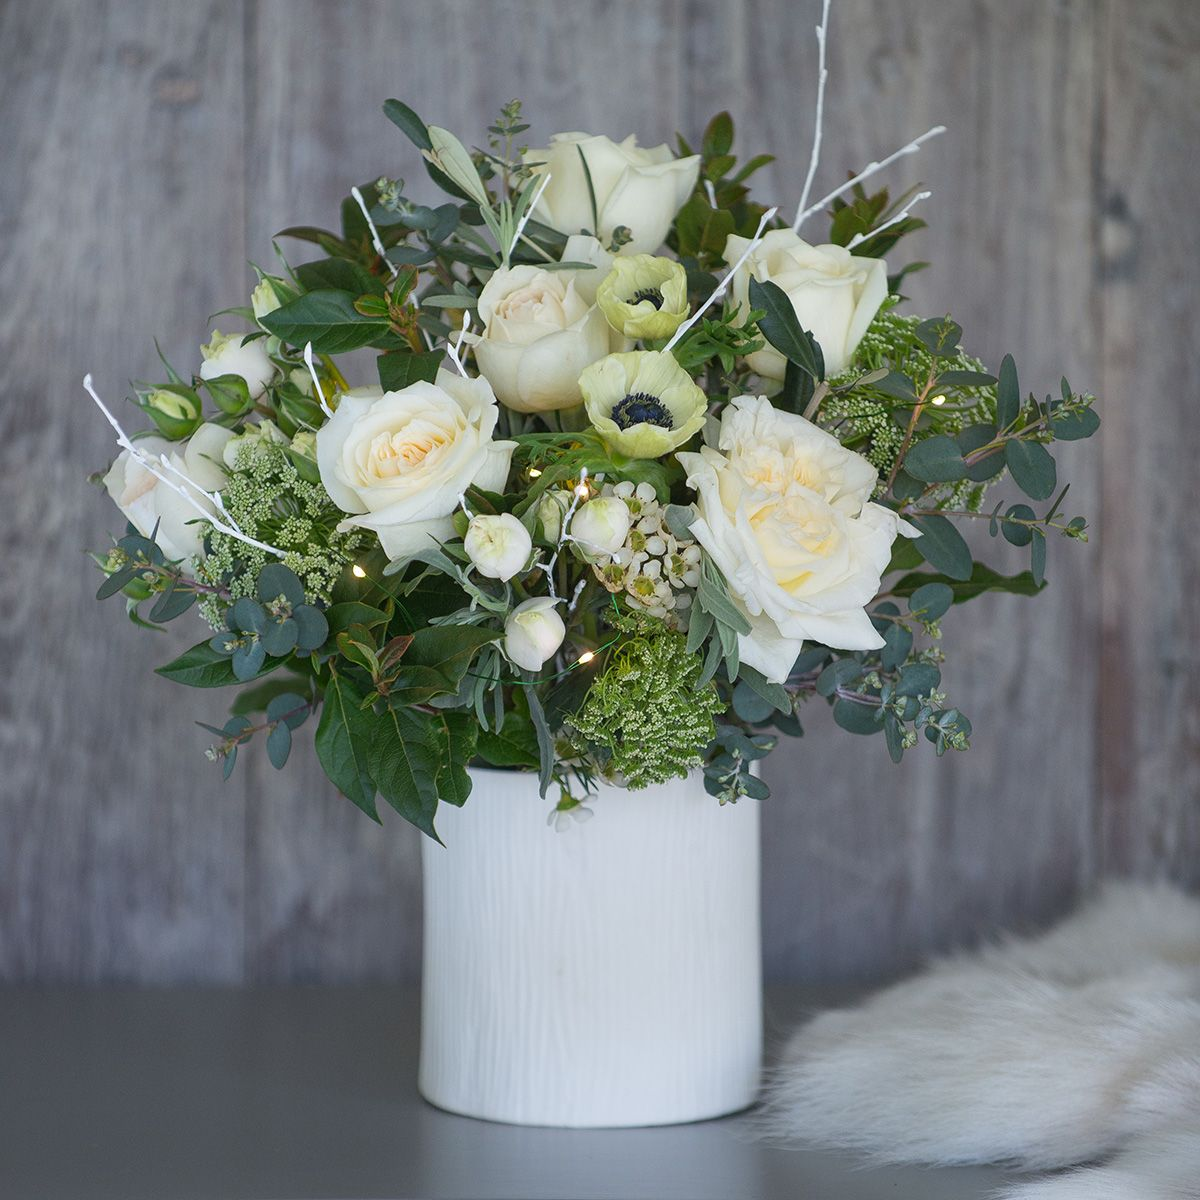 Why buy flowers for Christmas and what to choose?